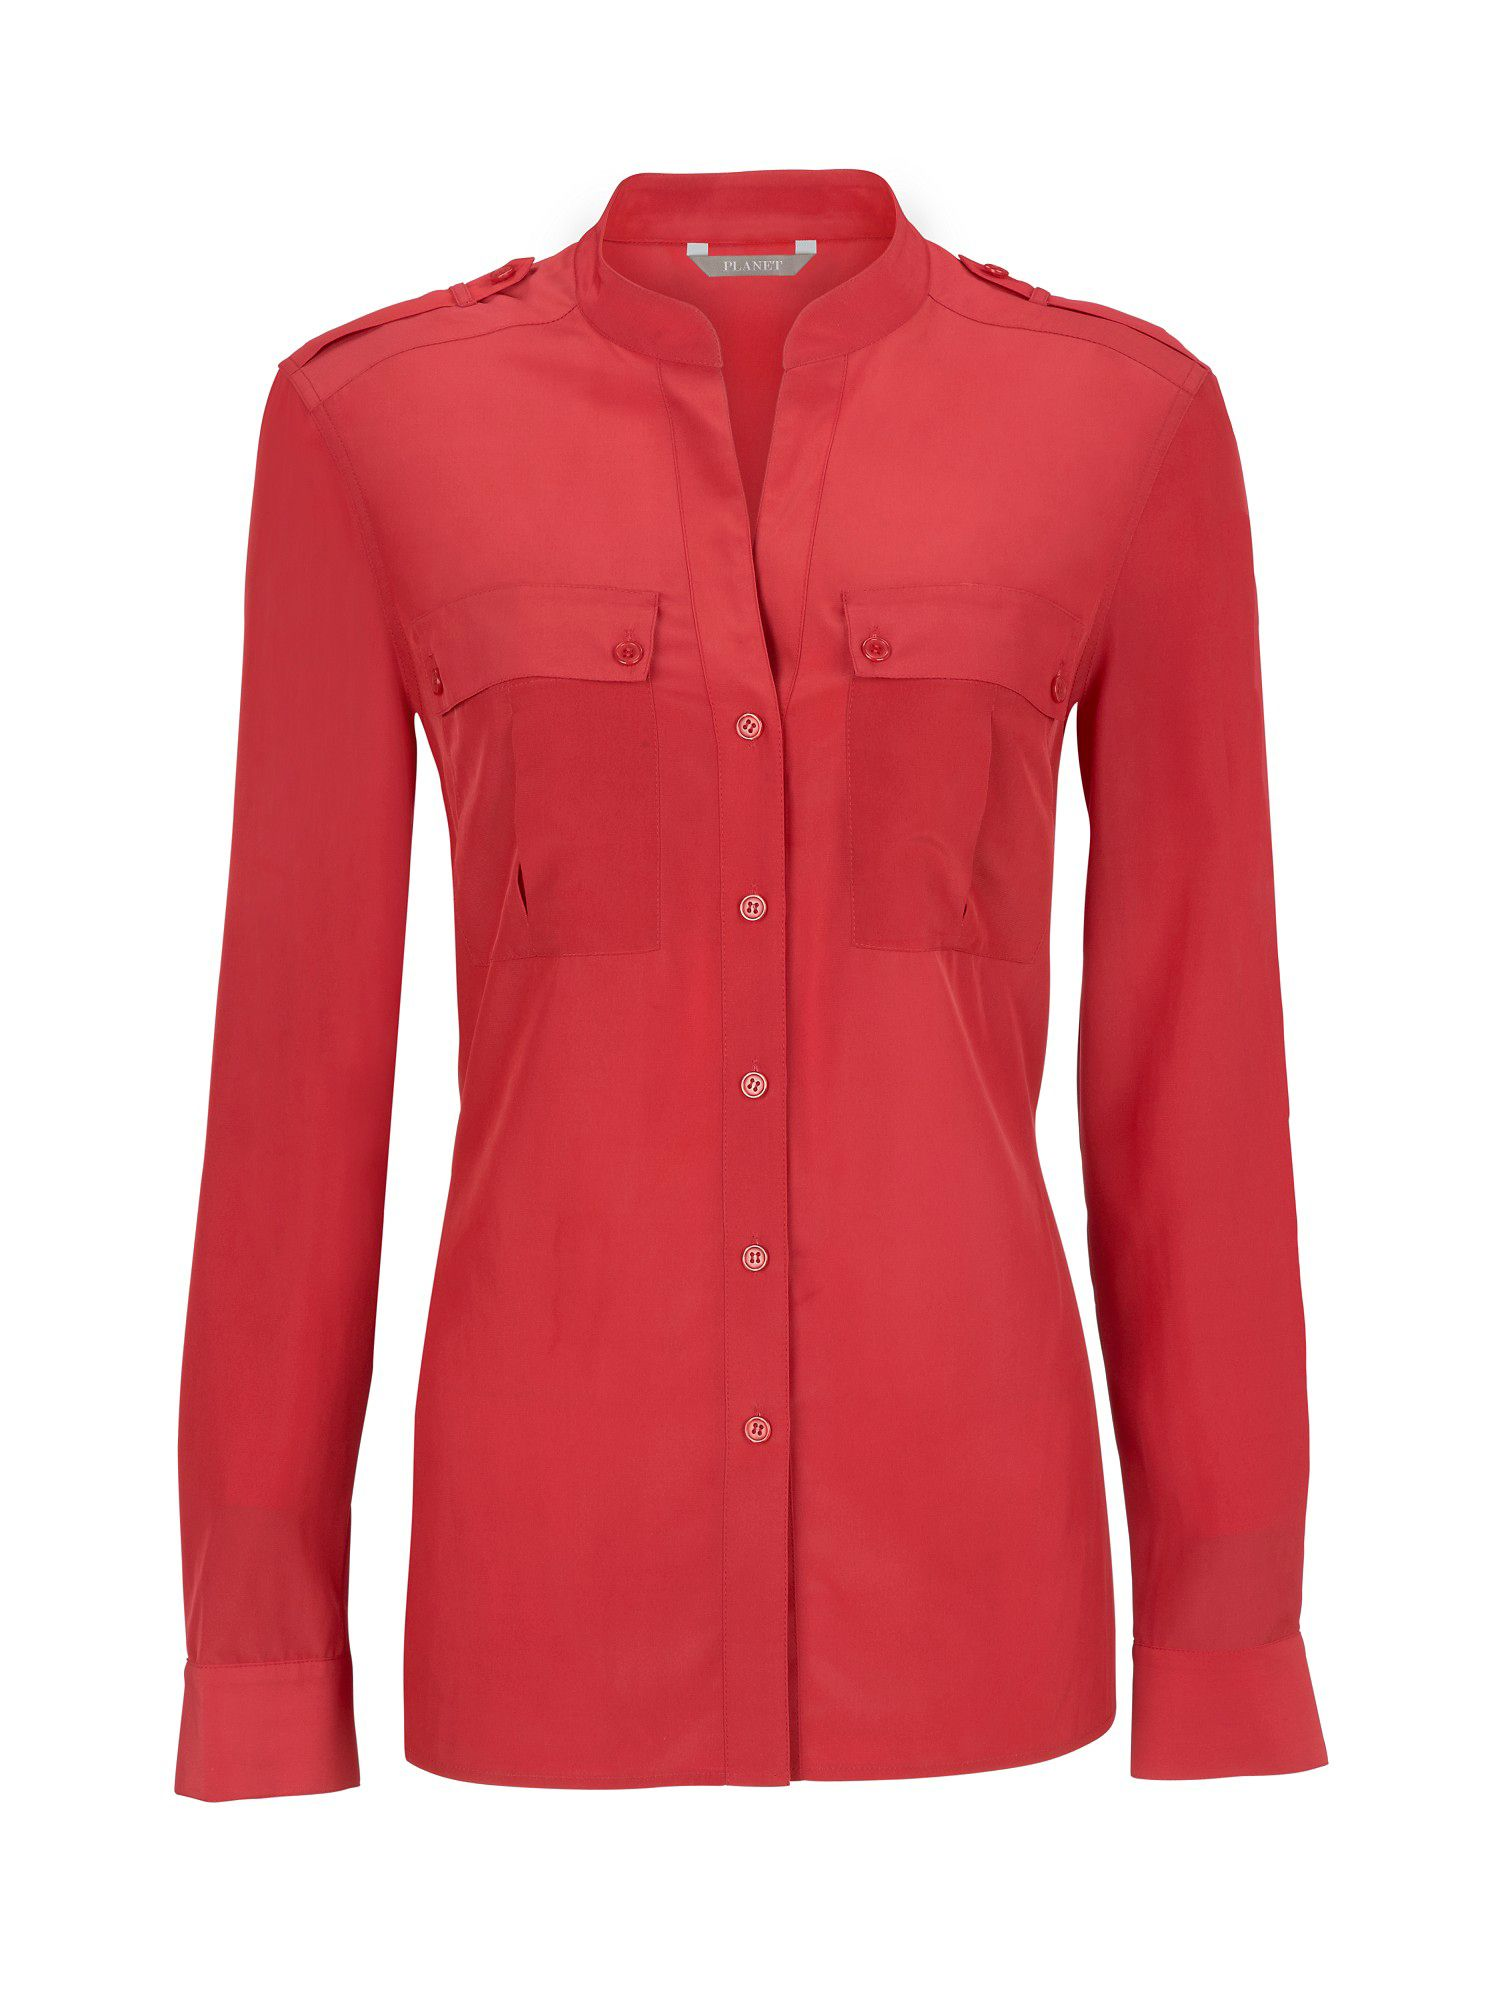 Planet Womens Planet Ruby red utility blouse, Red product image